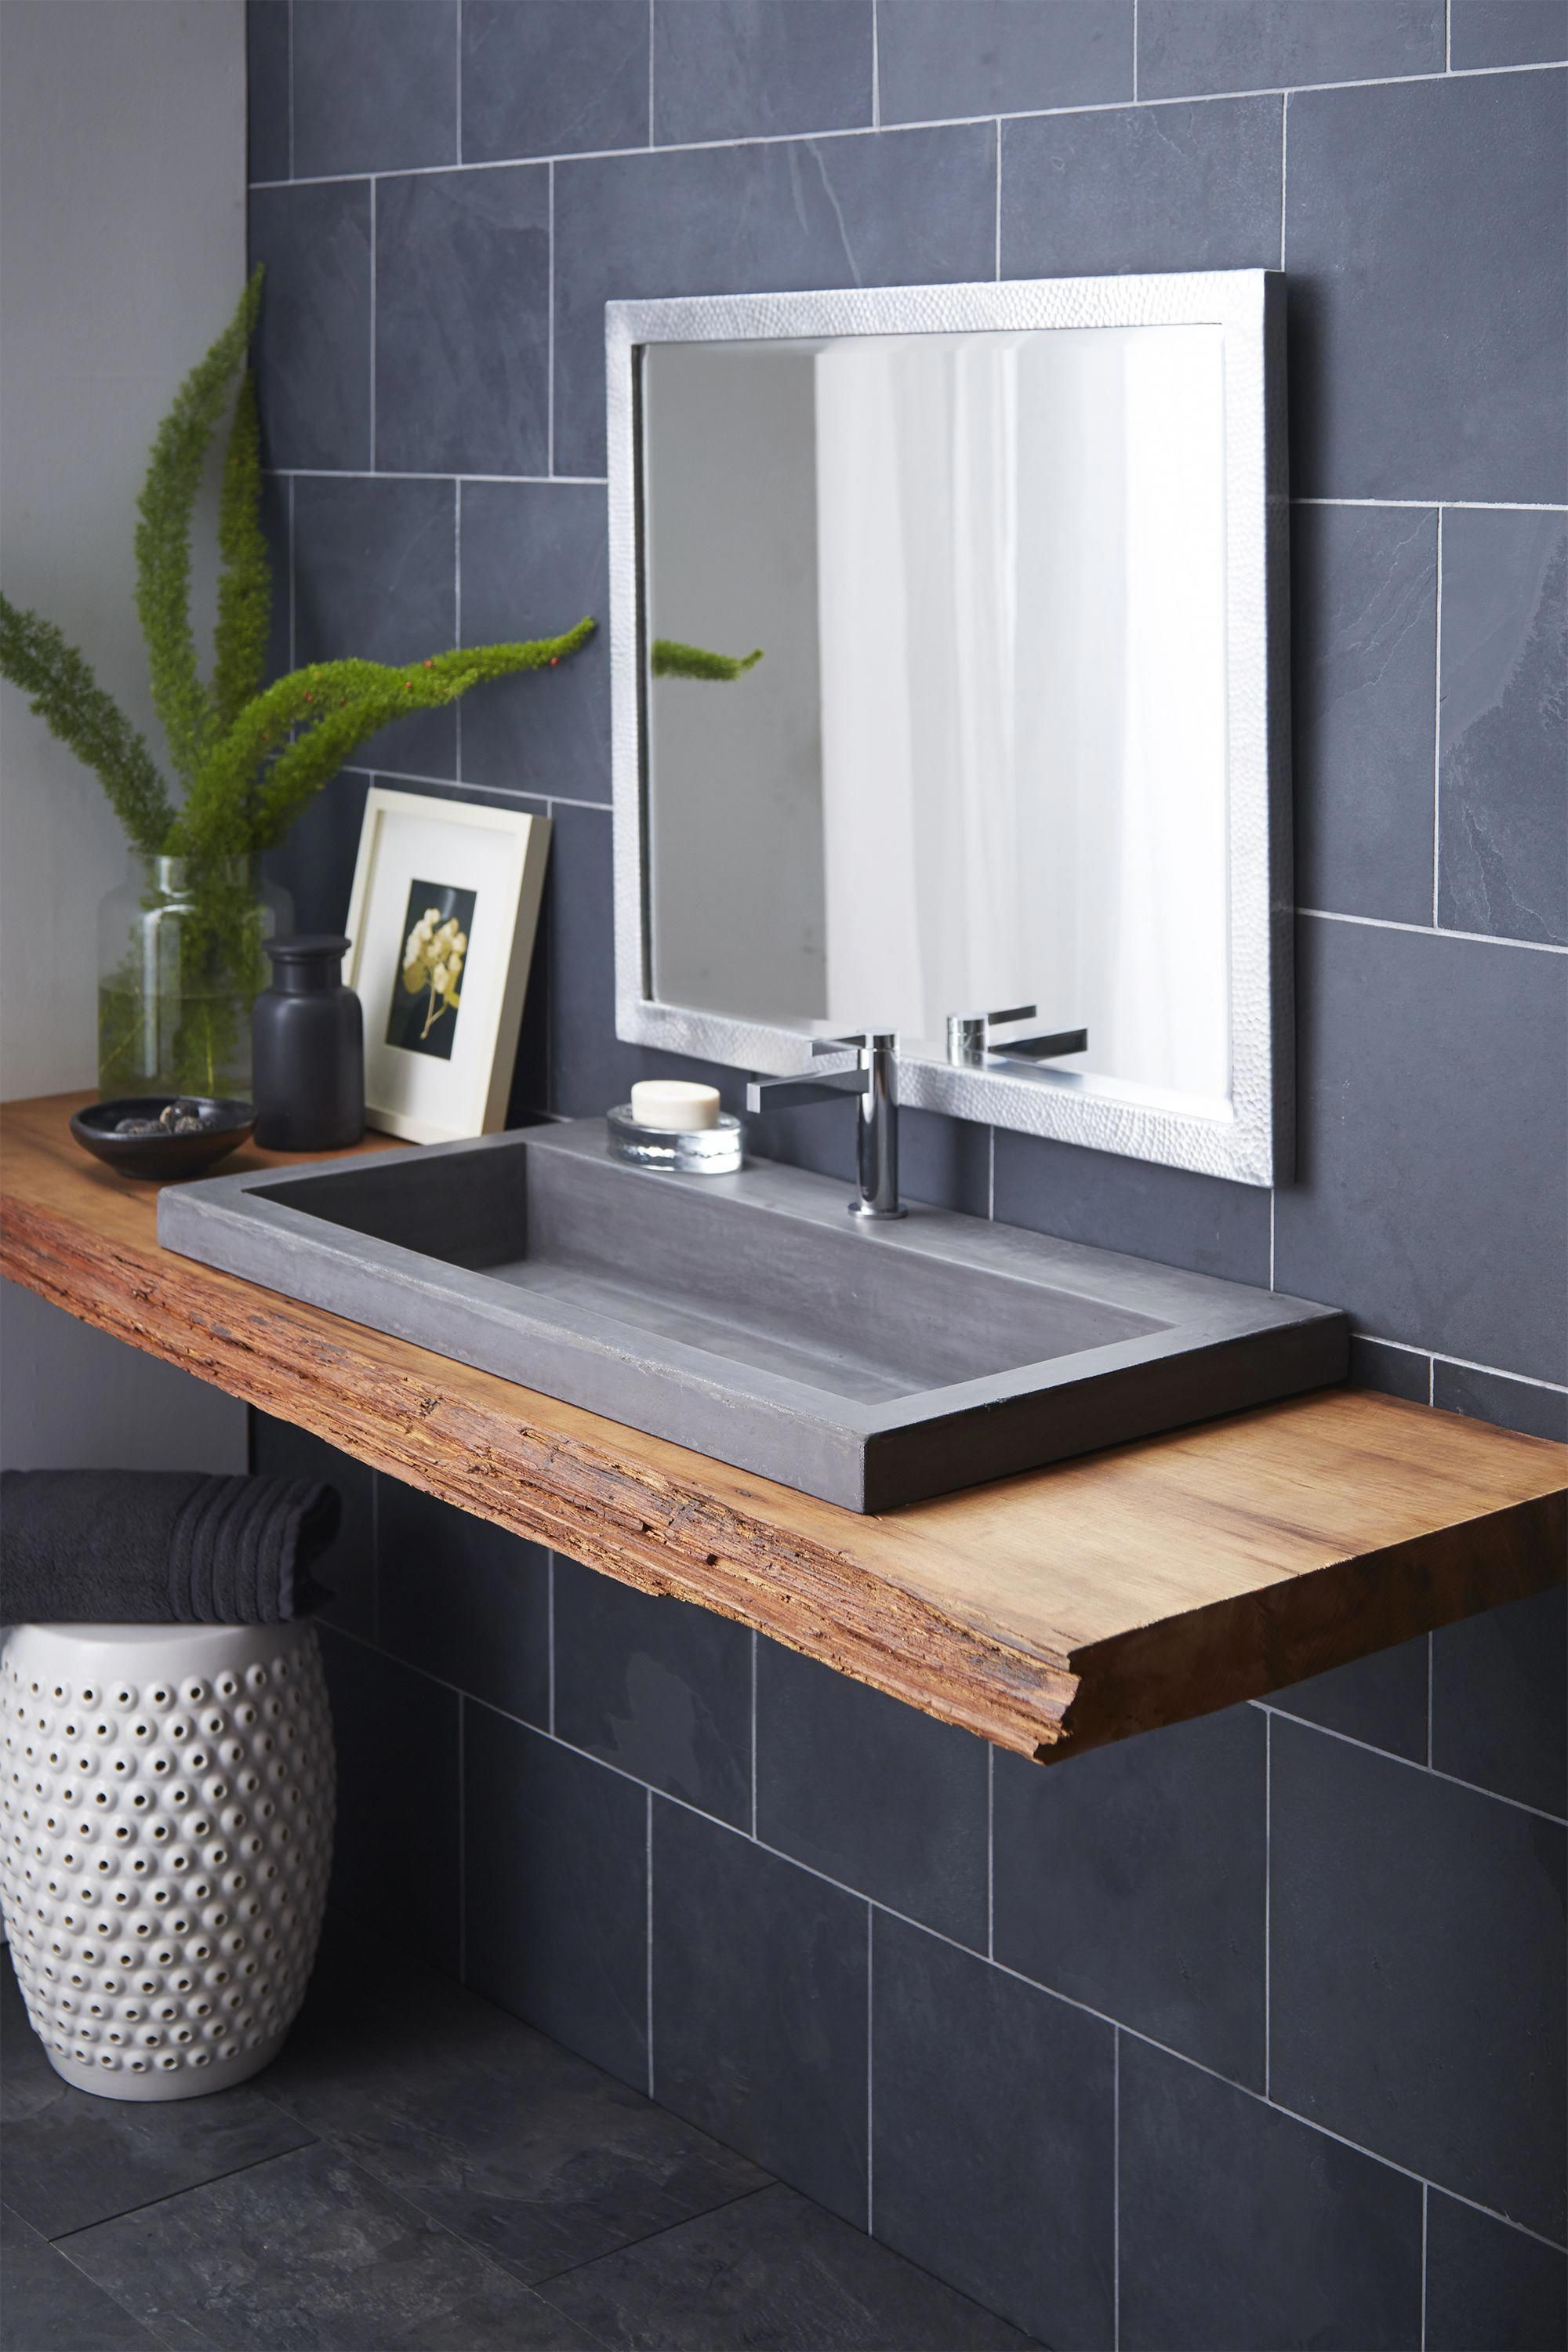 With its clean lines and generous size, this concrete sink